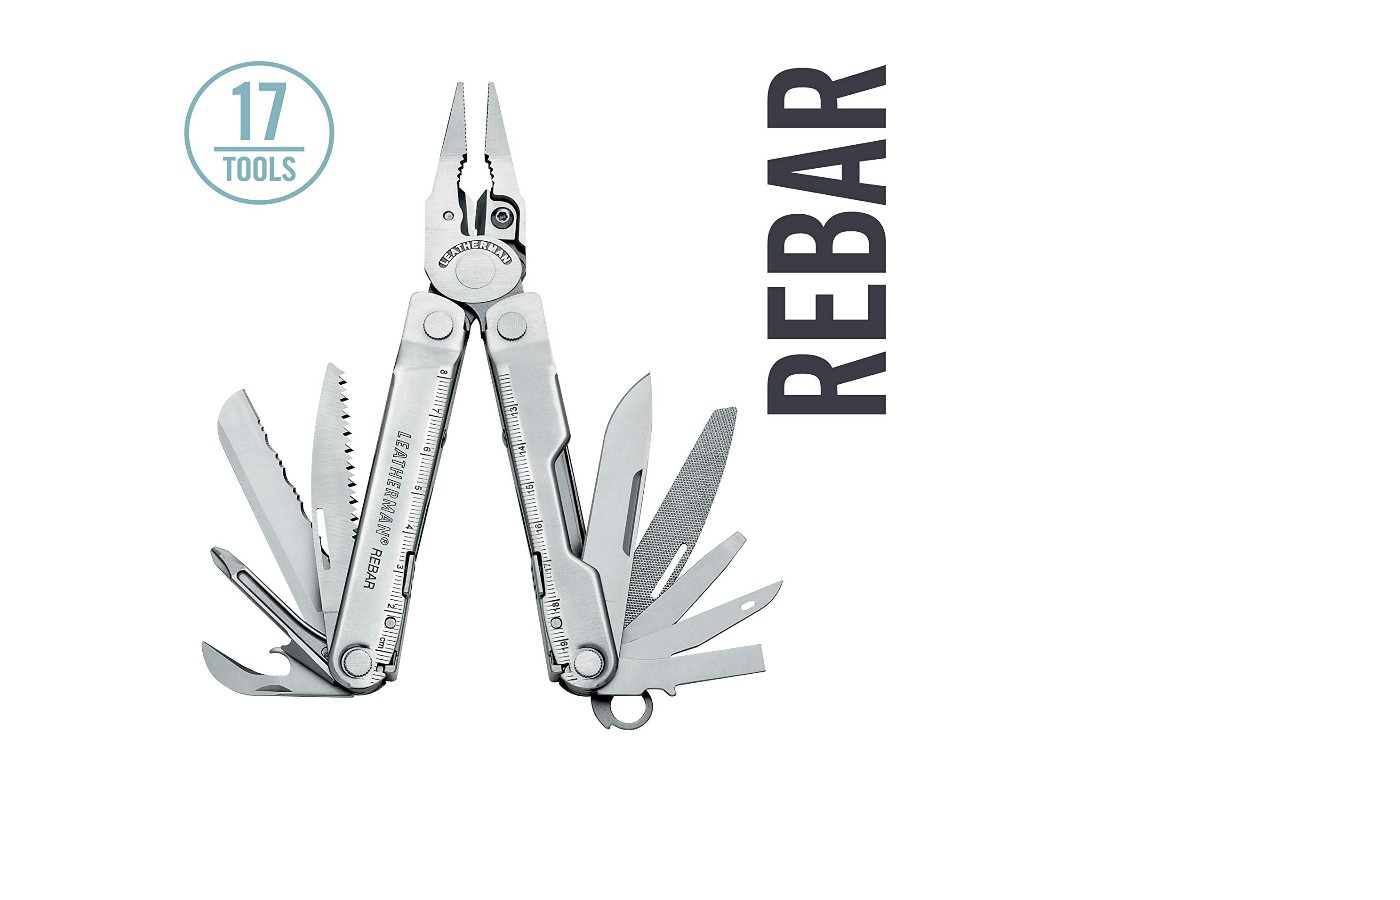 The Leatherman Rebar has 17 tools including two knives and a saw.